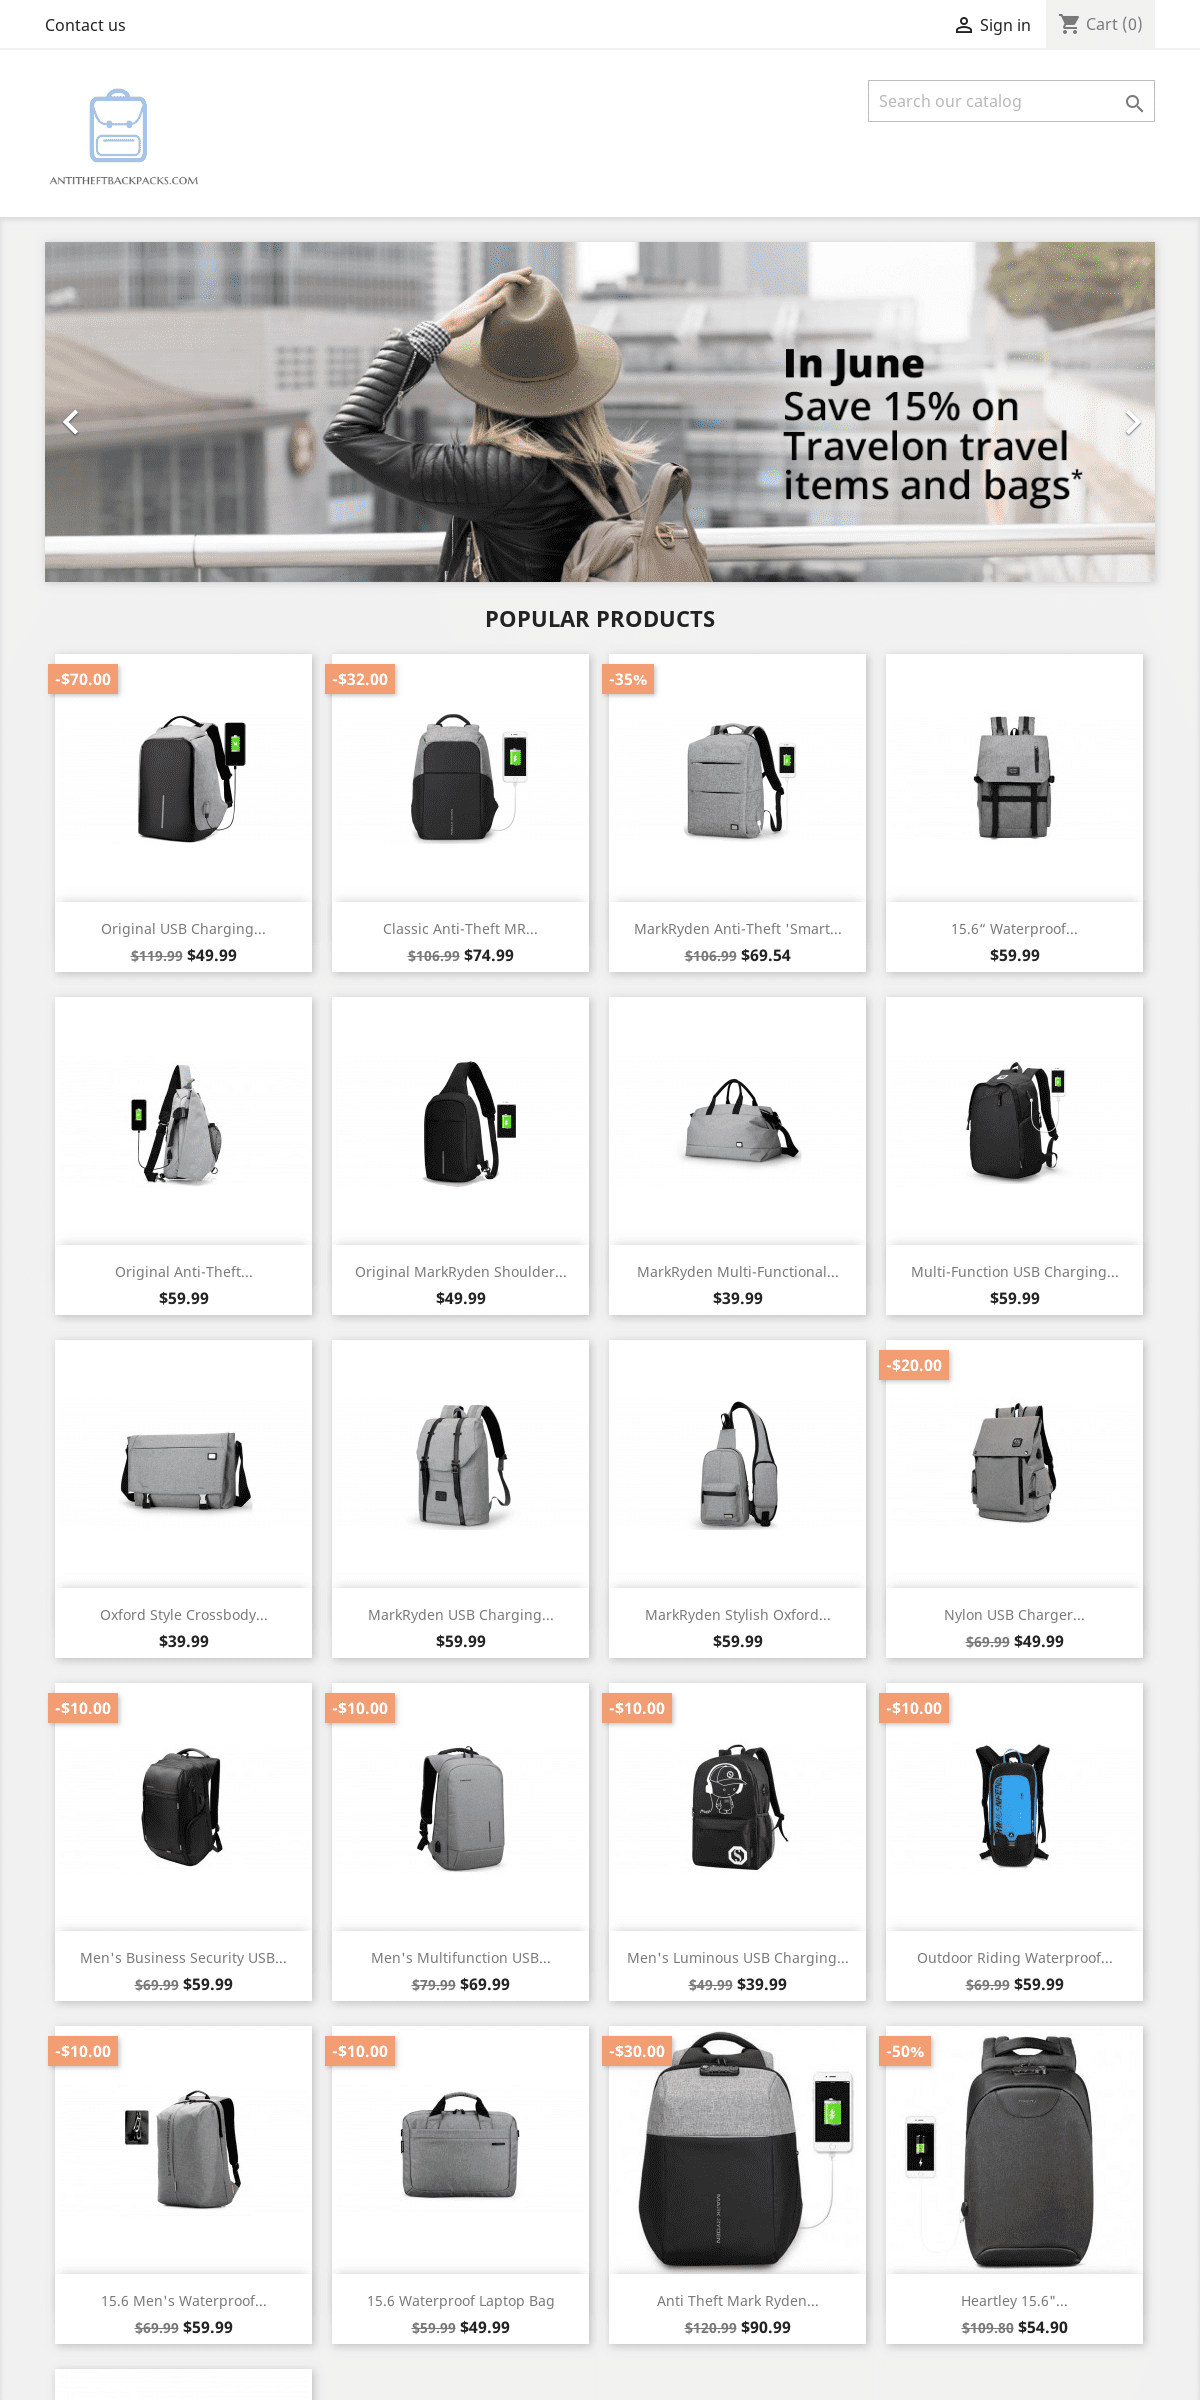 Best Anti Theft Backpacks For Travel Guide 2019